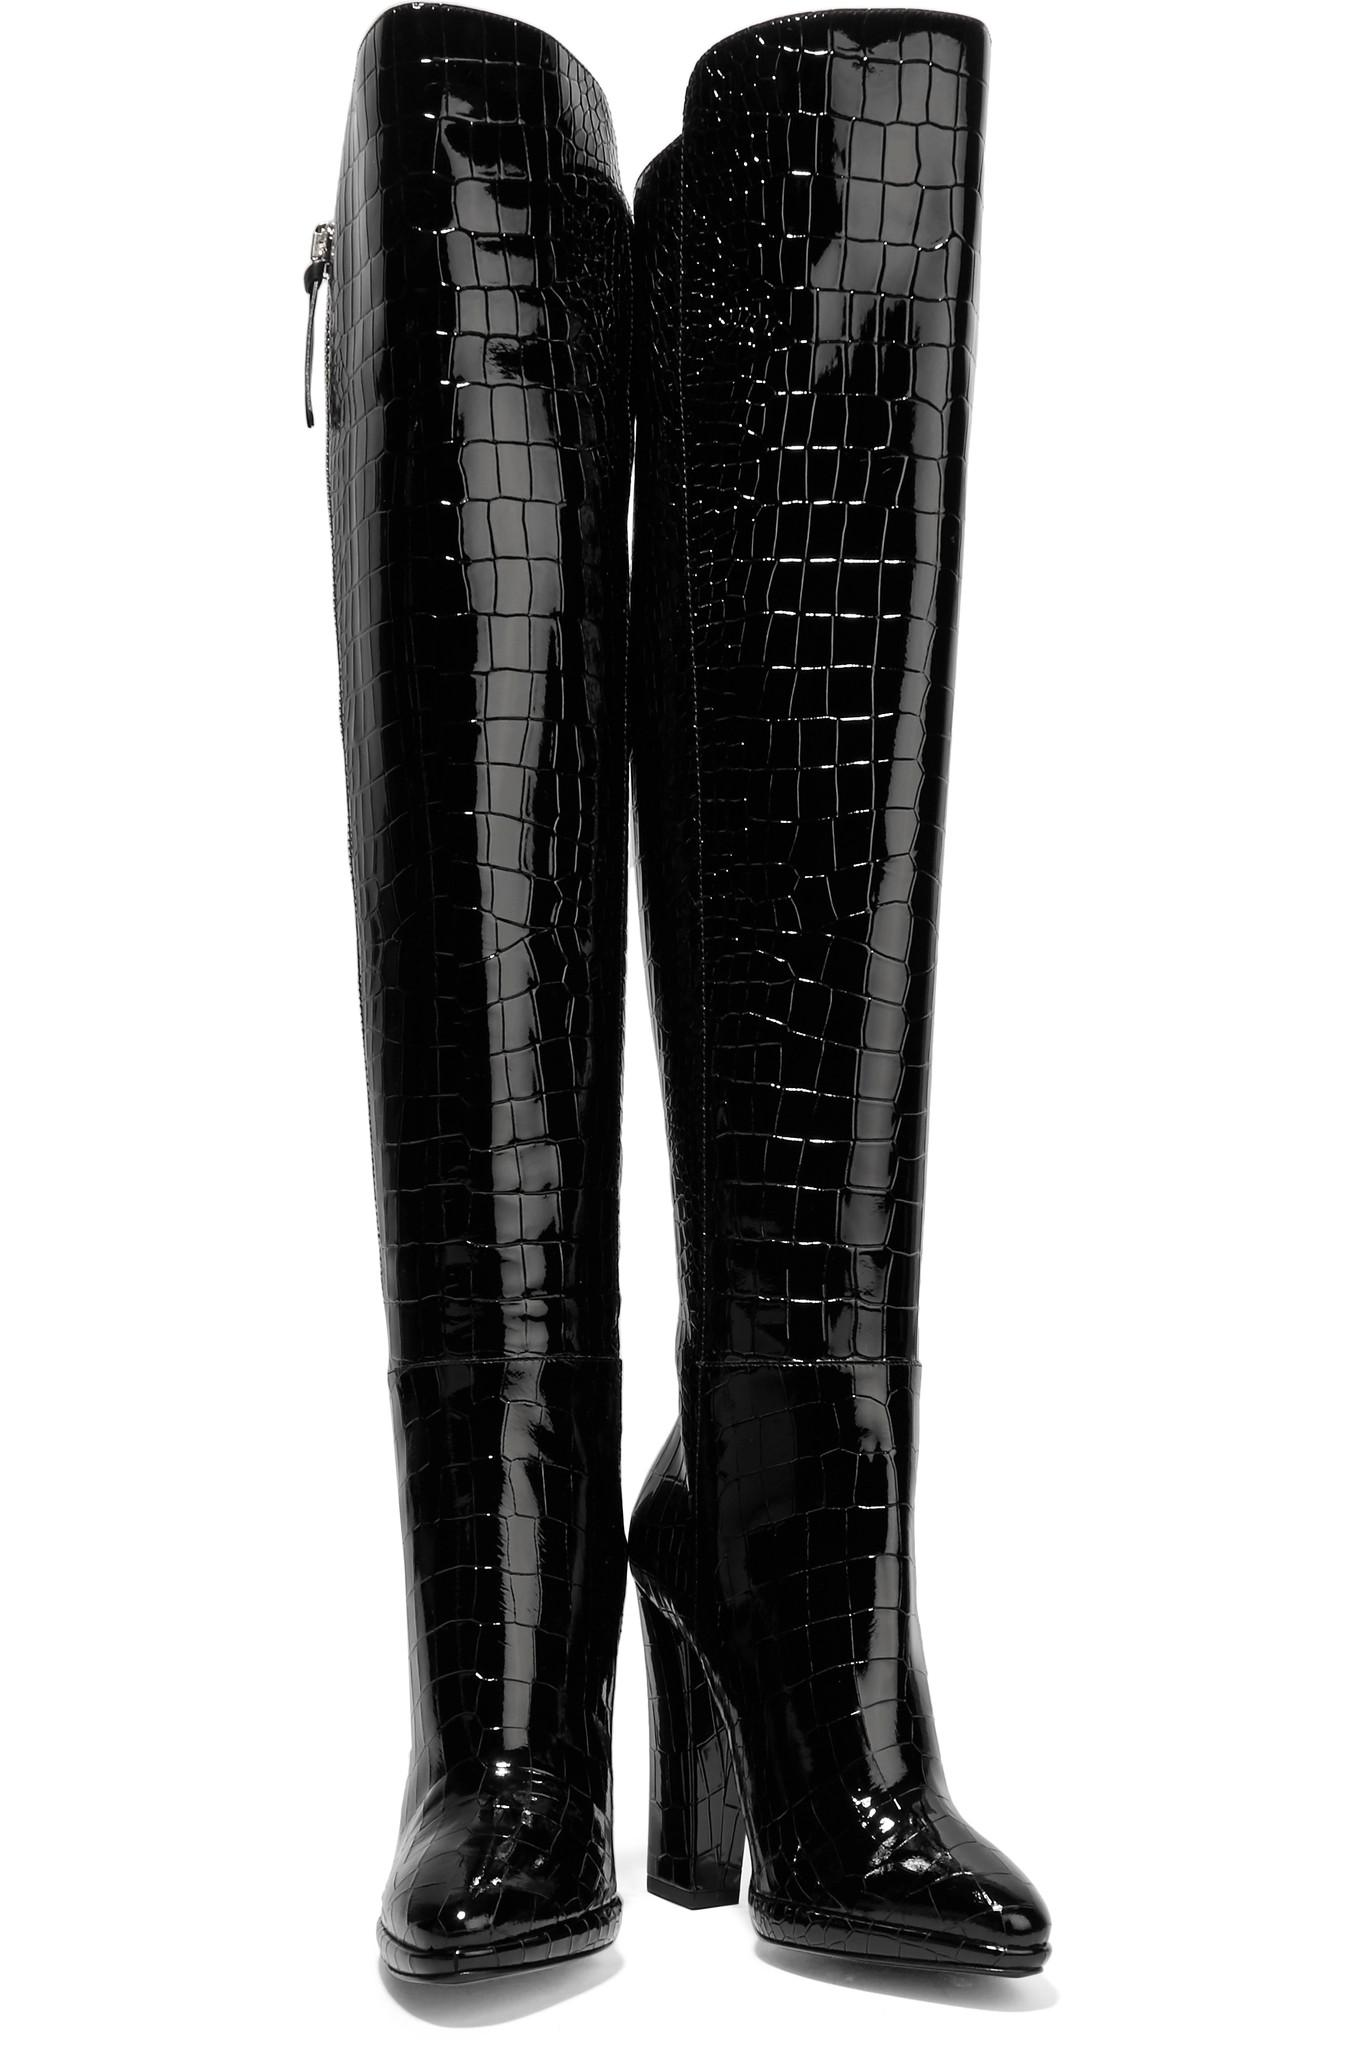 f5c573eea29 Giuseppe Zanotti Black Croc-effect Patent-leather Over-the-knee Boots